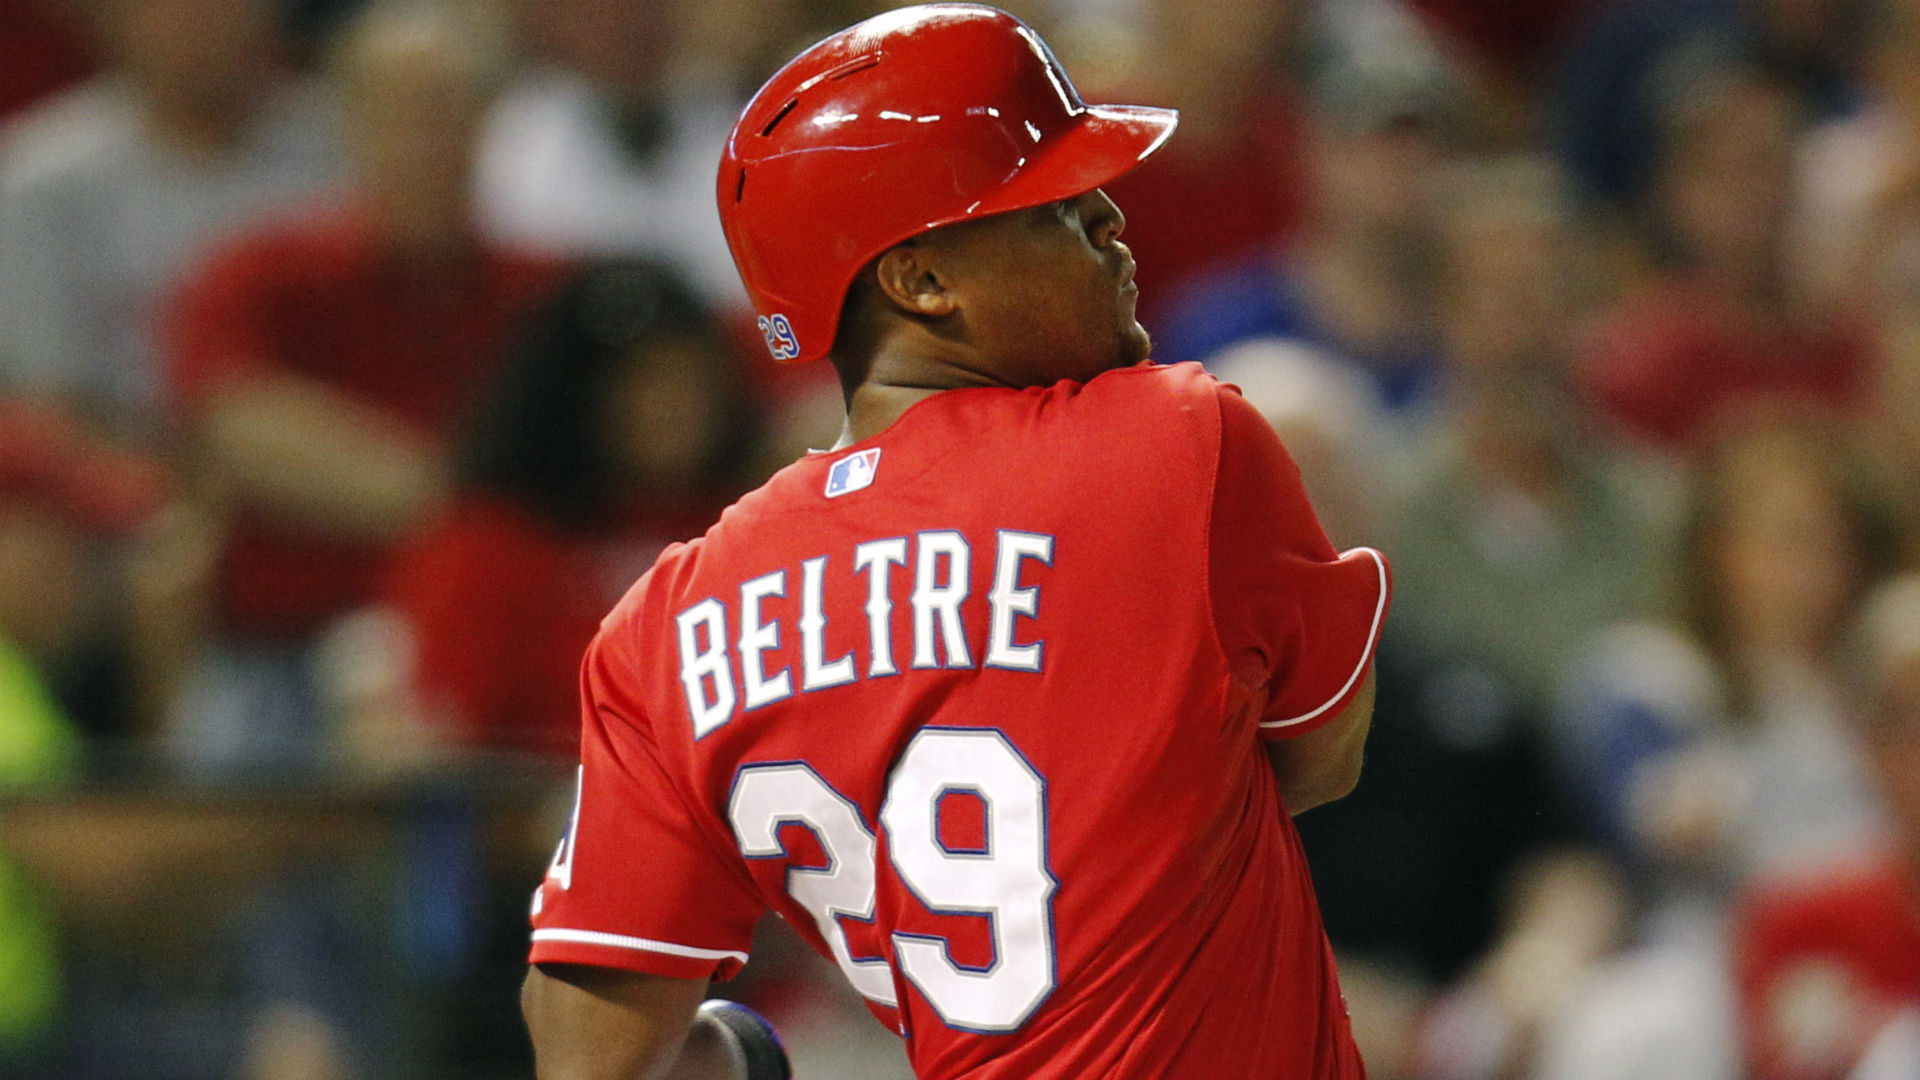 Third base rankings: Beltre claims top spot